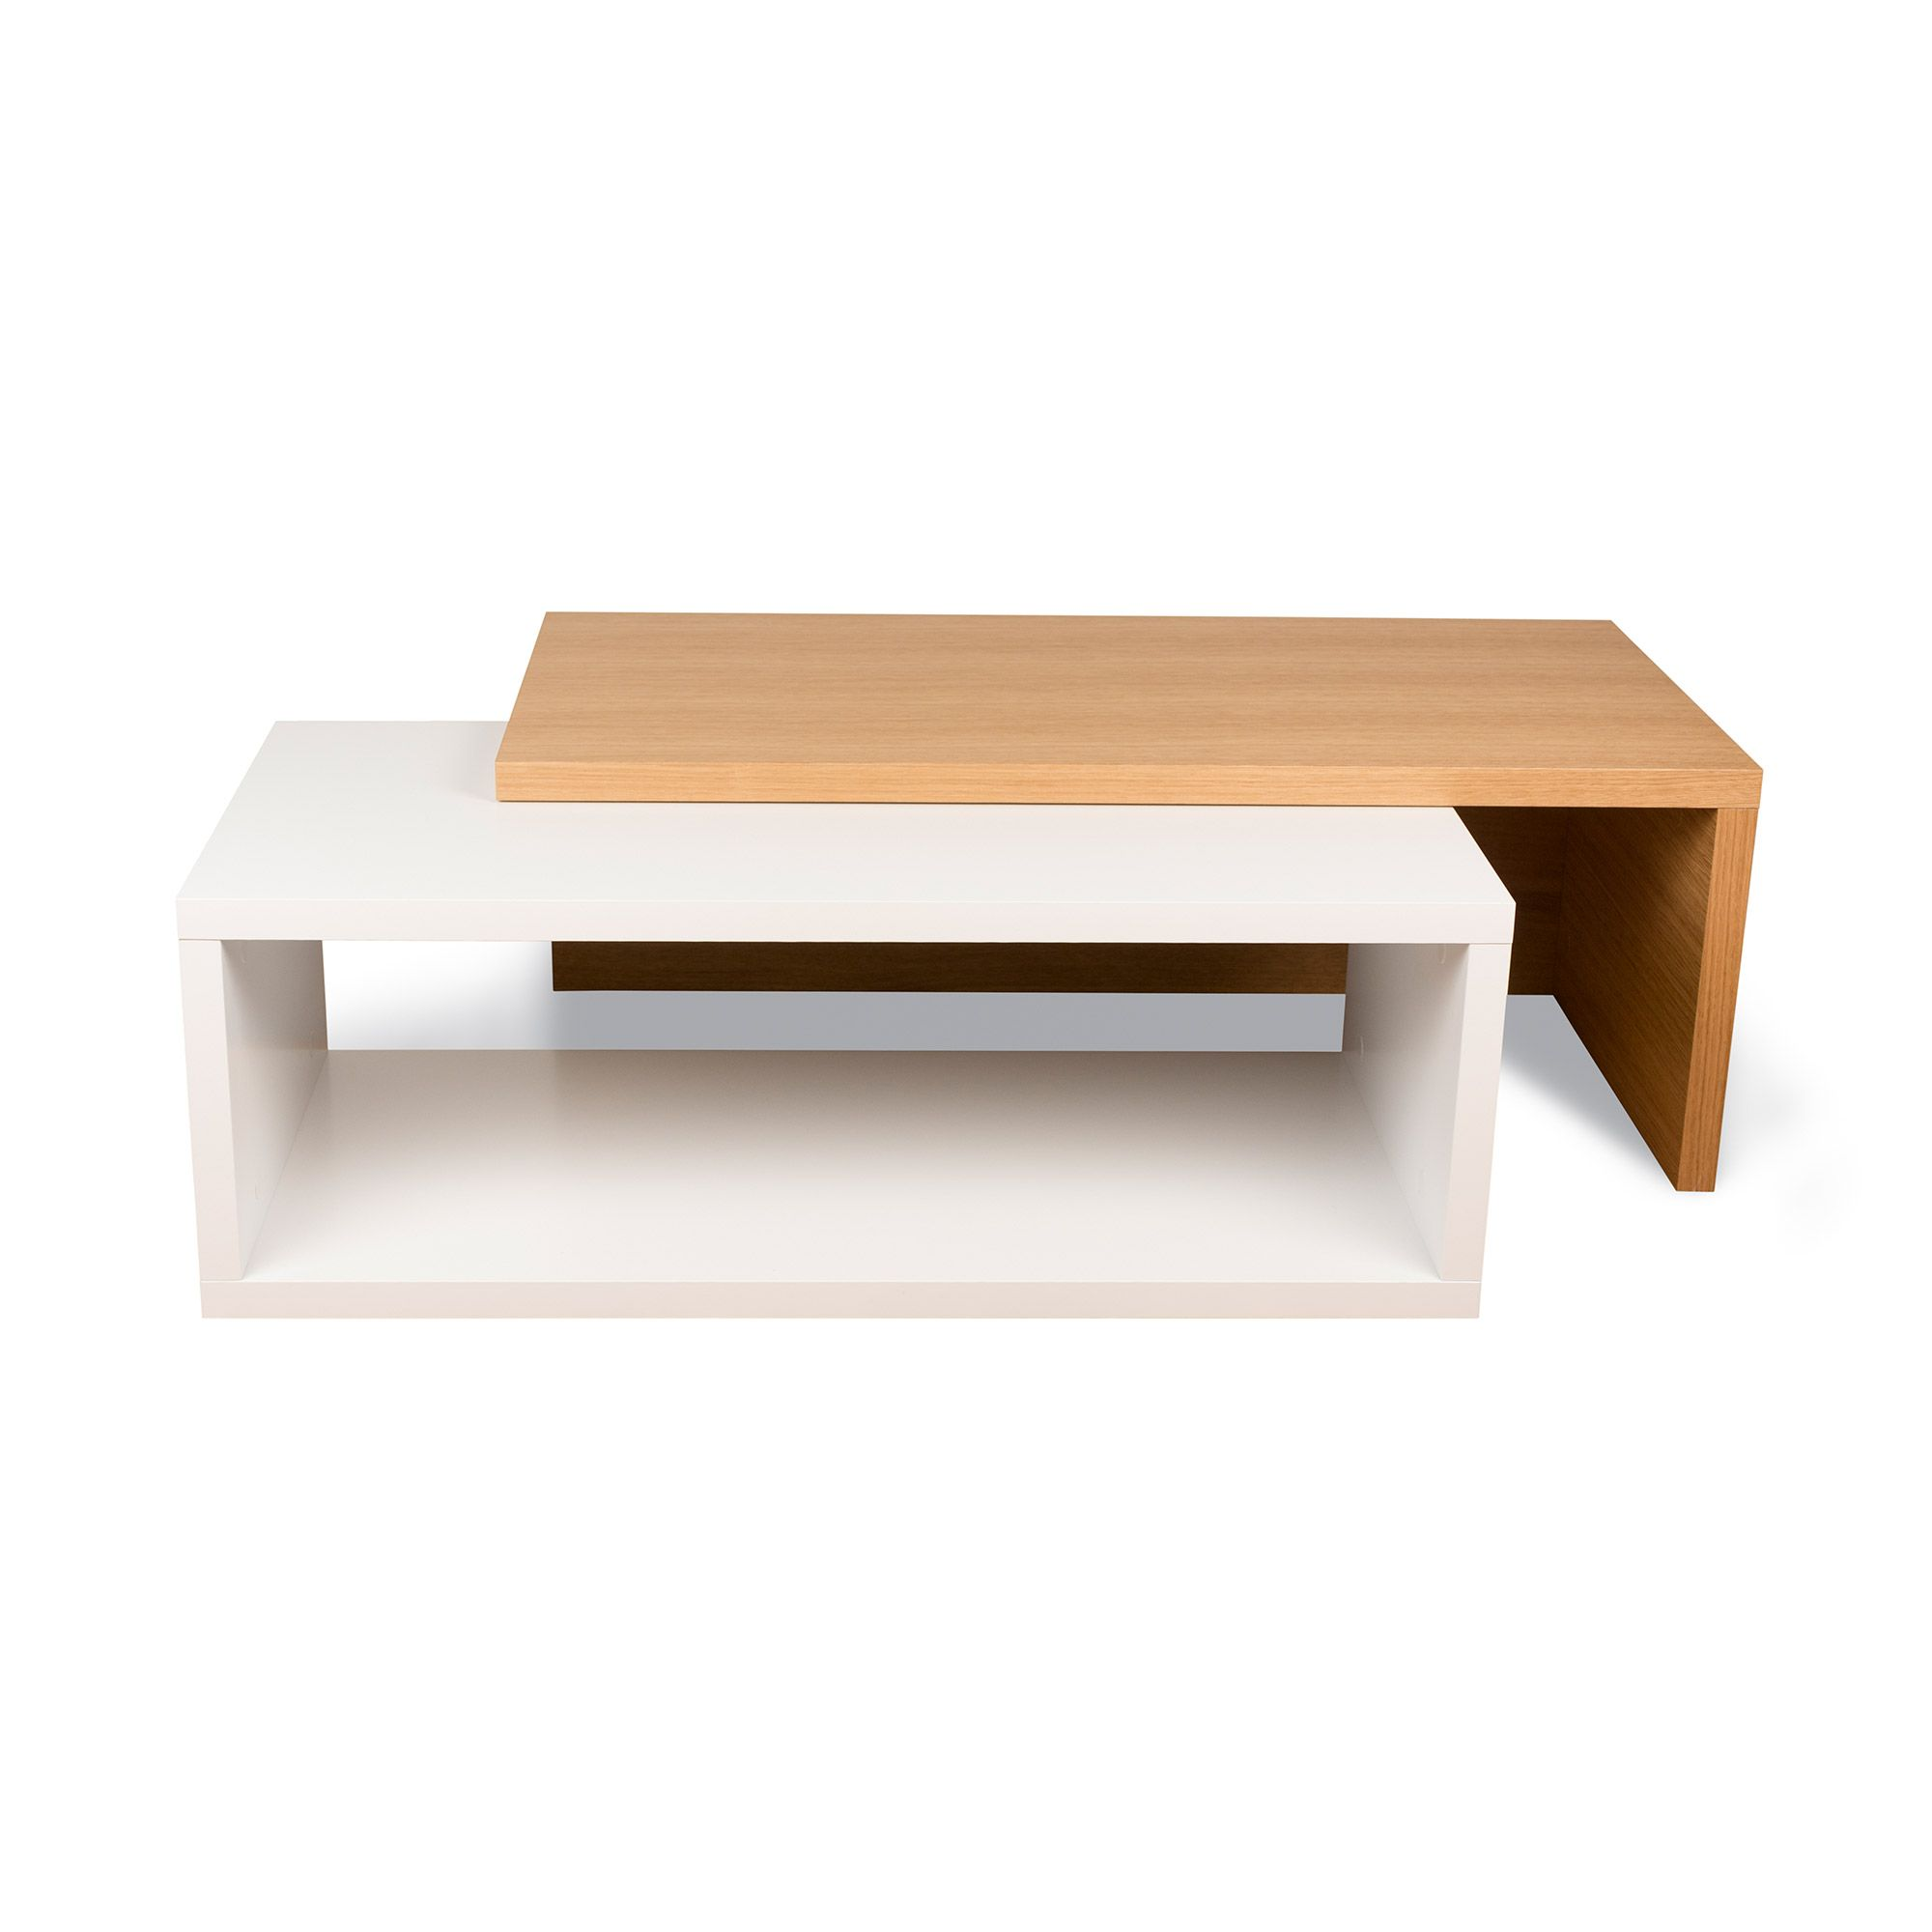 Table Basse Modulable Avec Niche L90 Cm Jazz Living Rooms And Room